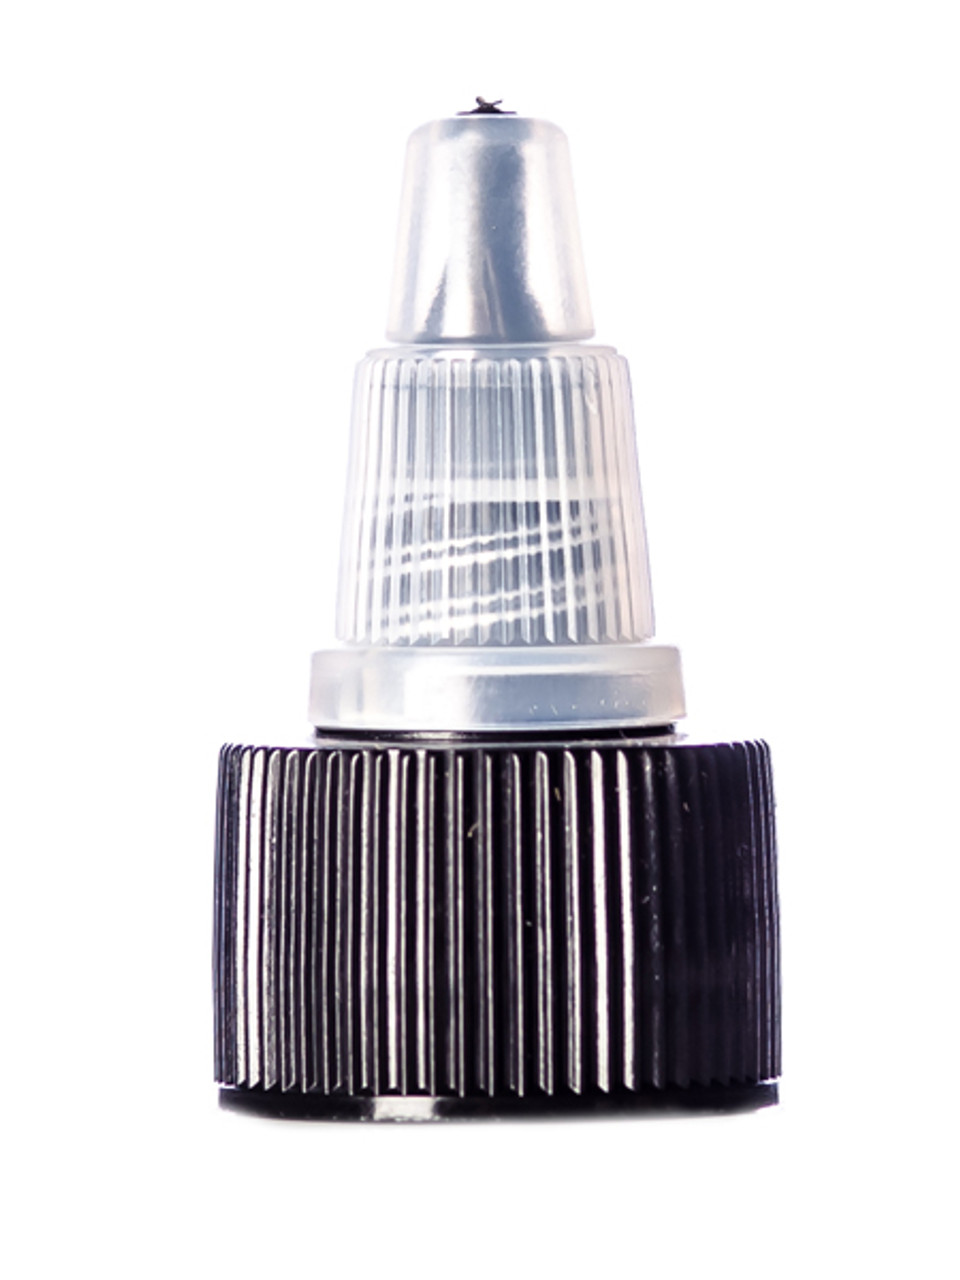 Black Natural colored PP 24-410 ribbed skirt twist-open unlined dispensing  lid